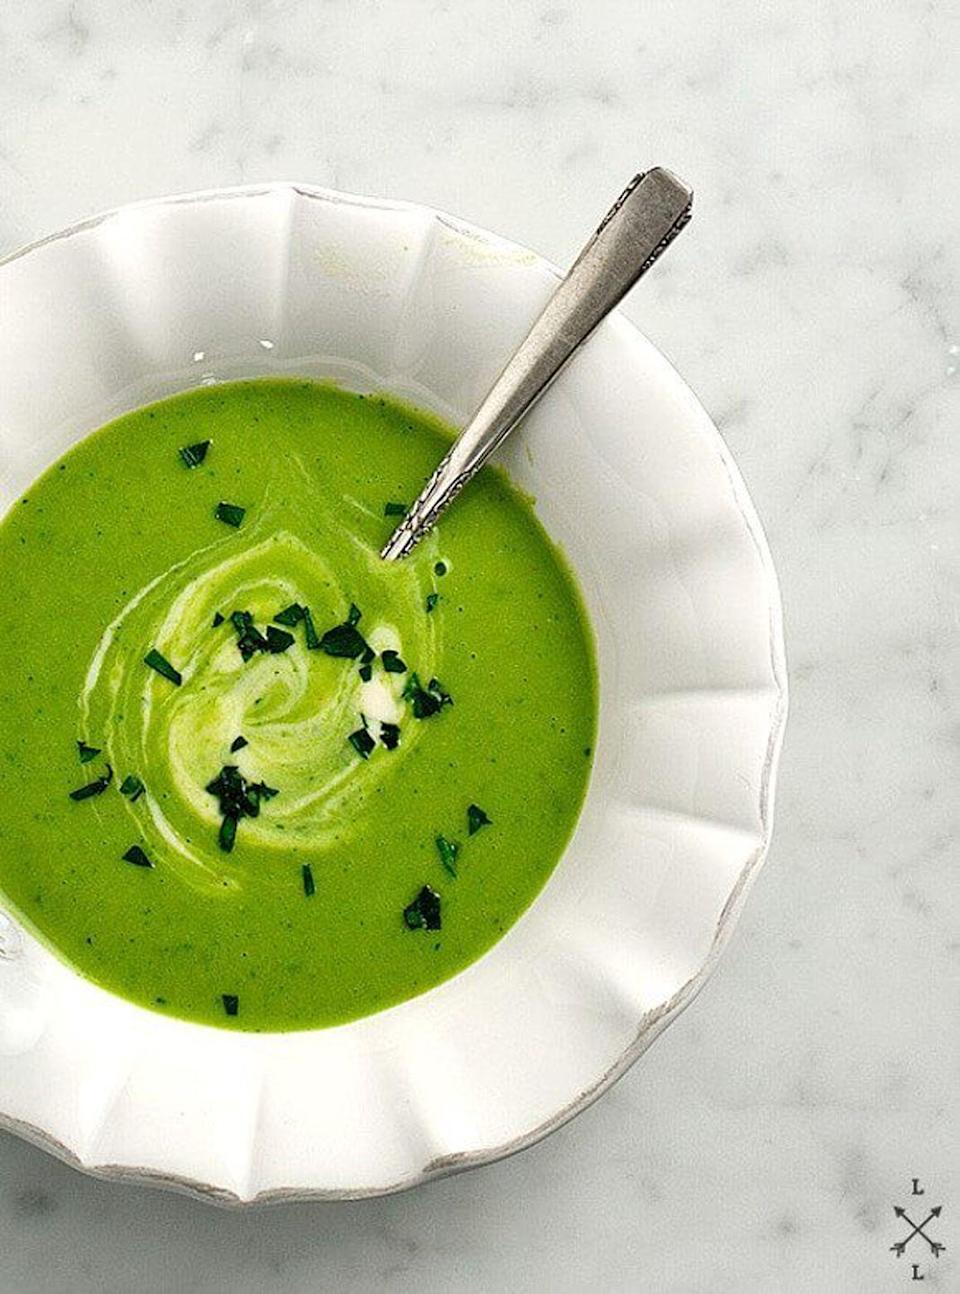 """<p>This light soup is bursting with herb-y goodness in every spoonful. </p><p><strong>Get the recipe at <a href=""""https://www.loveandlemons.com/green-garabanzo-leek-soup/"""" rel=""""nofollow noopener"""" target=""""_blank"""" data-ylk=""""slk:Love and Lemons"""" class=""""link rapid-noclick-resp"""">Love and Lemons</a>.</strong></p>"""